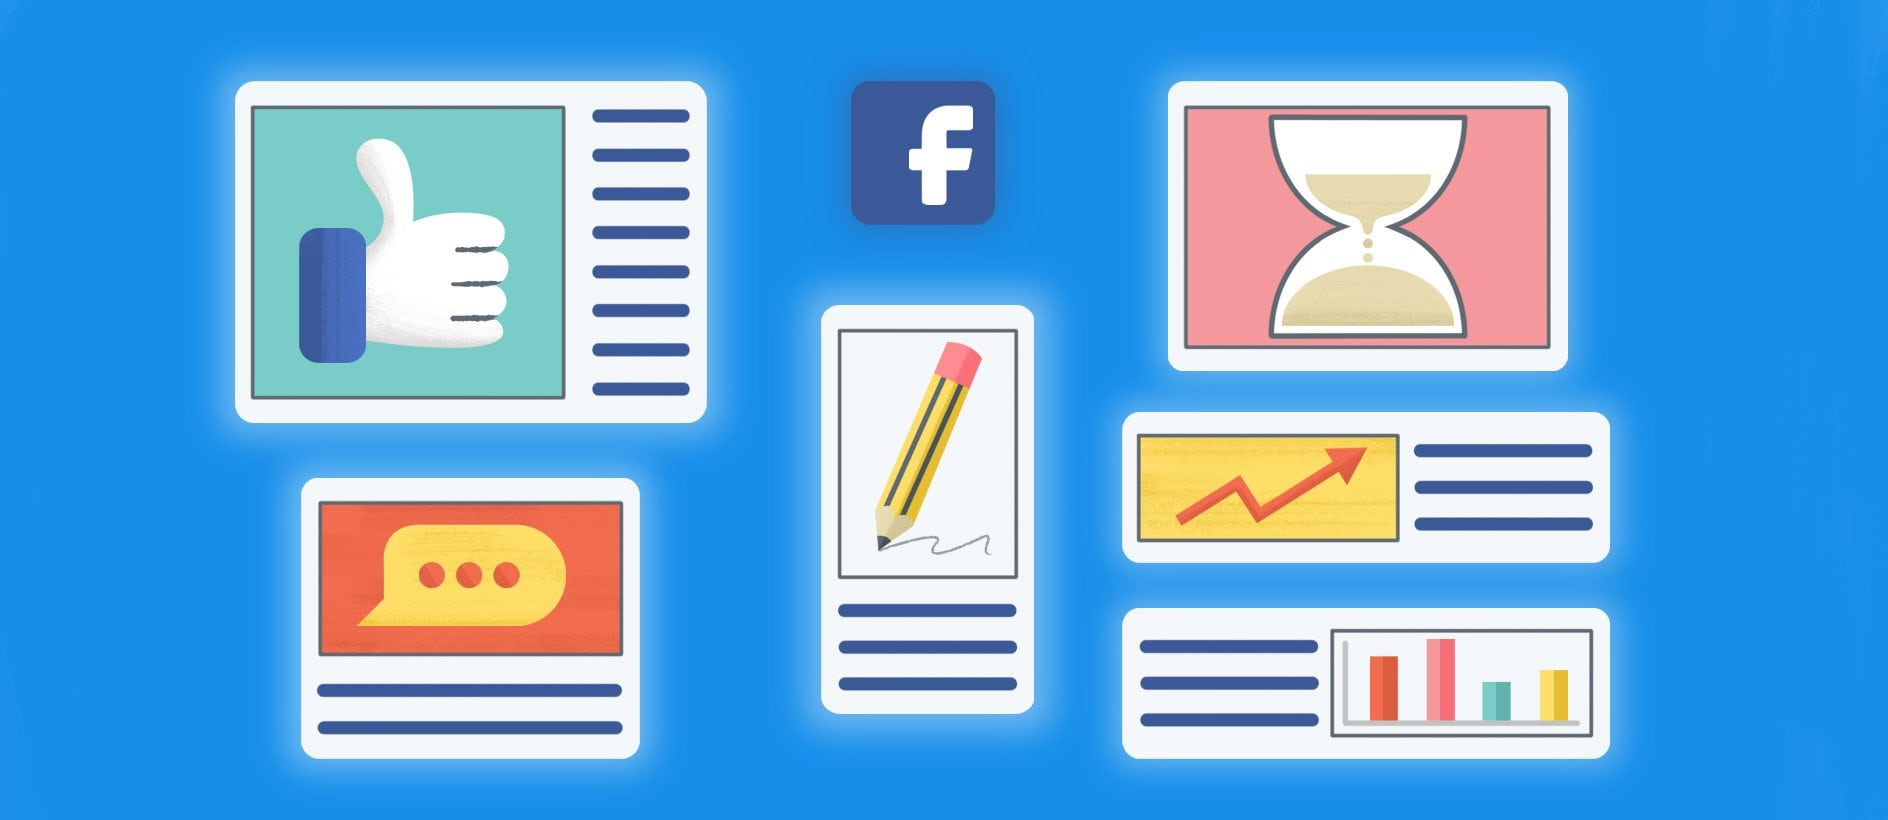 The Complete Guide to Facebook Ads Manager: How to Create, Manage, Analyze Your Facebook Ads